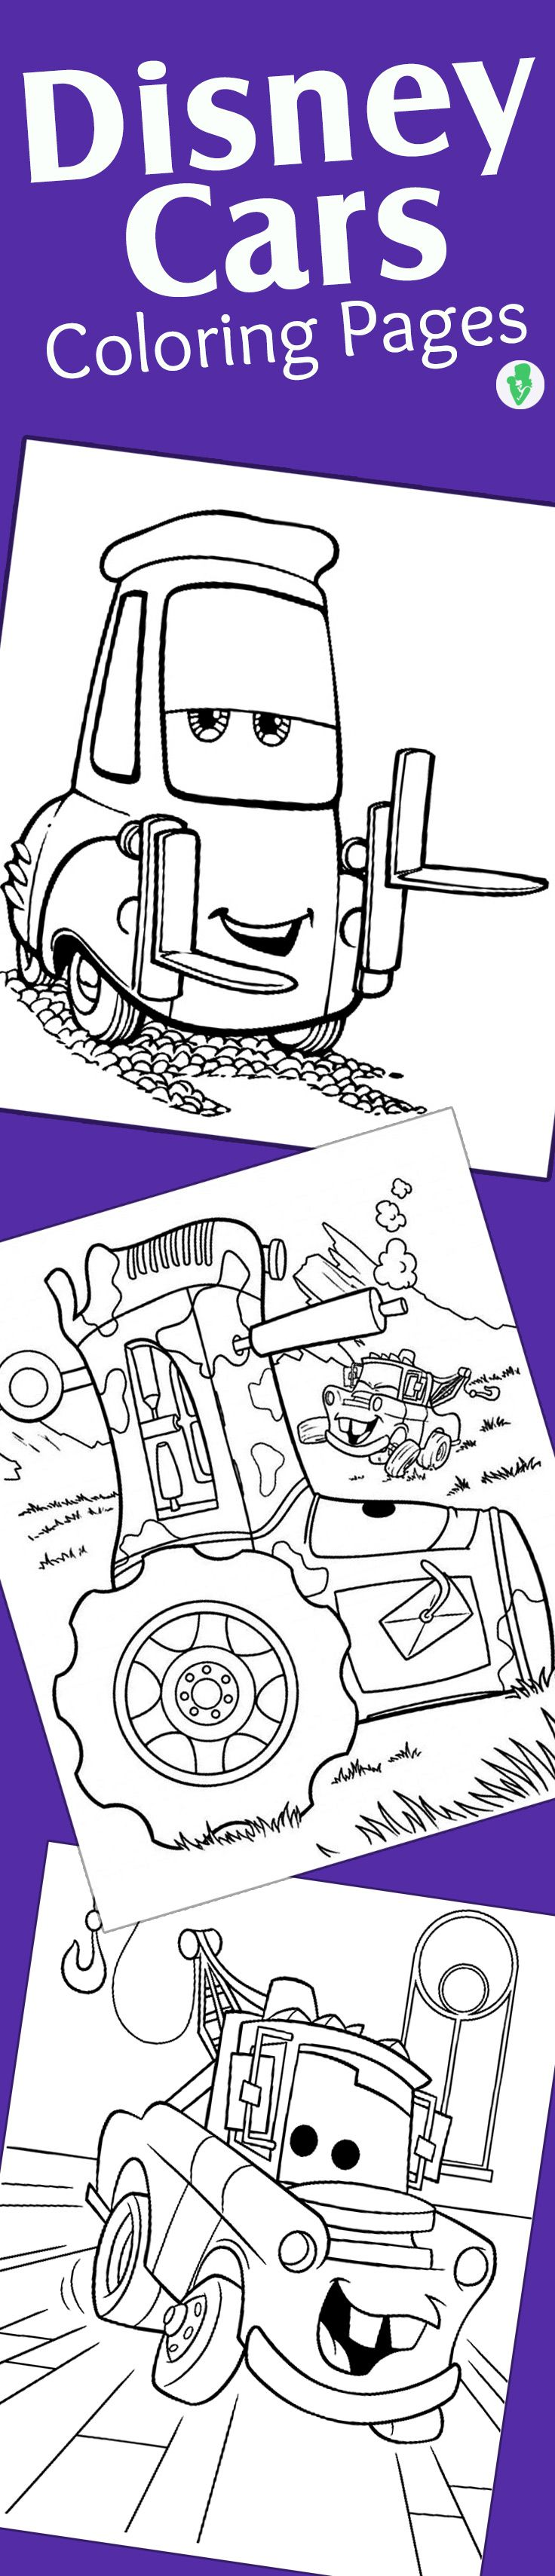 Top free printable disney cars coloring pages online